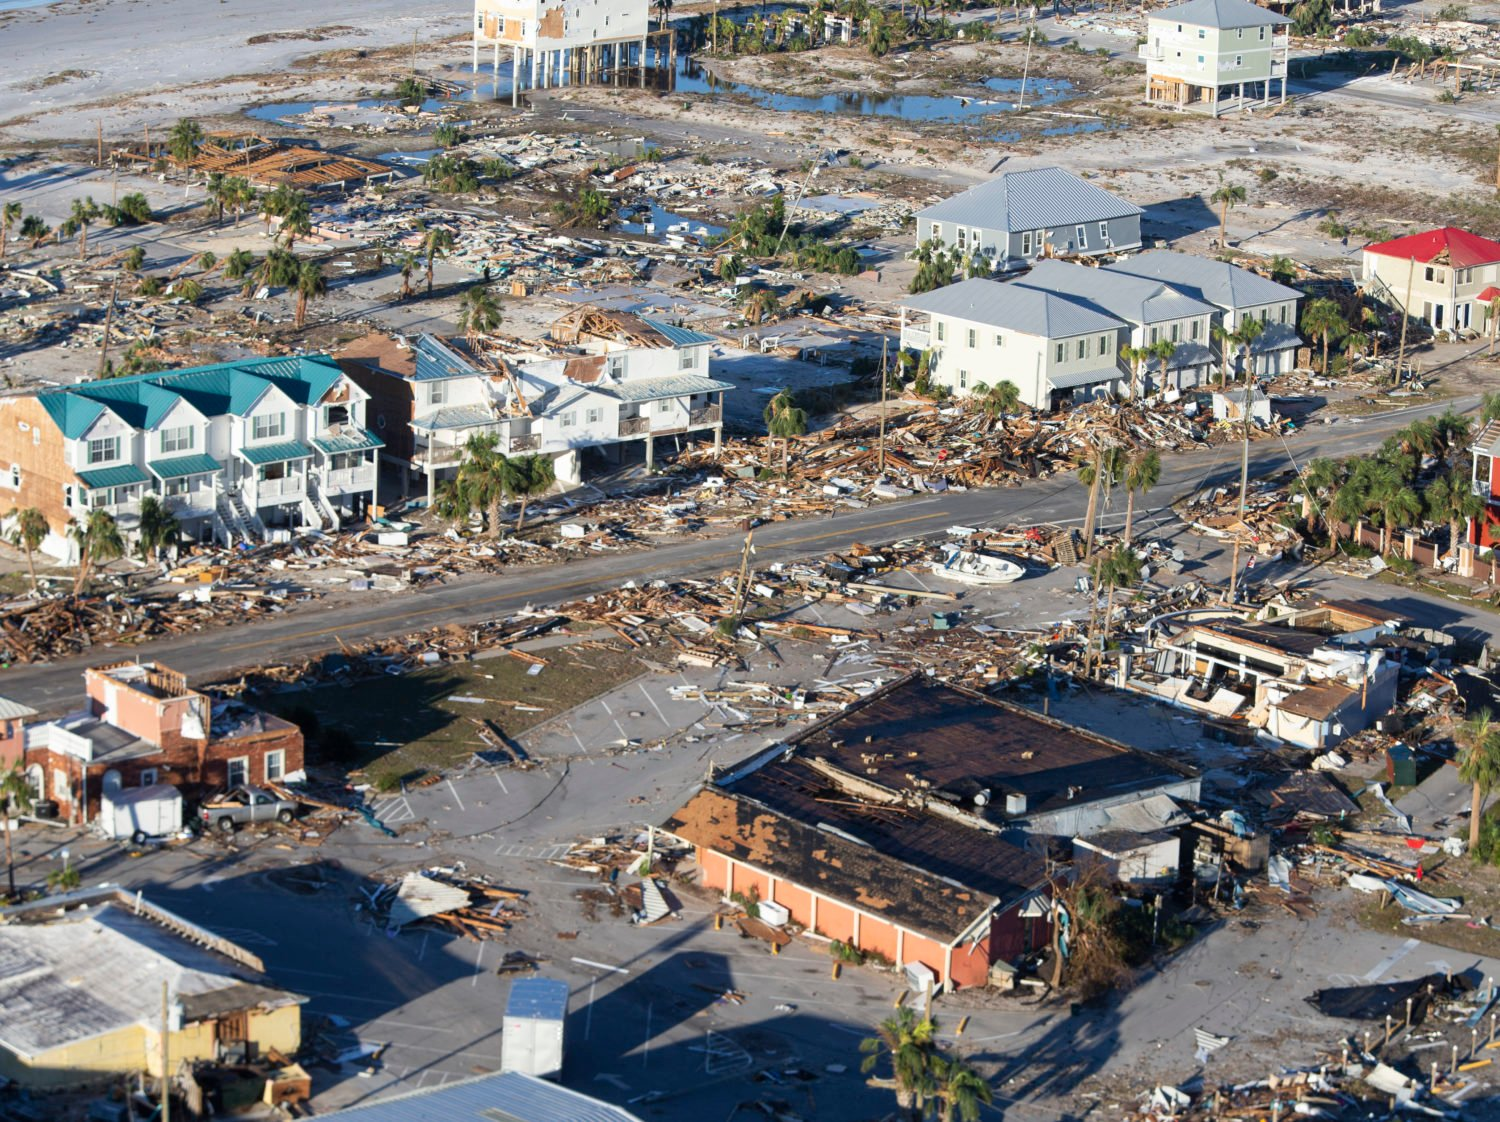 MEXICO BEACH, FL - OCTOBER 12: Homes and businesses along US 98 are left in devastation by Hurricane Michael. (Photo by Mark Wallheiser/Getty Images)